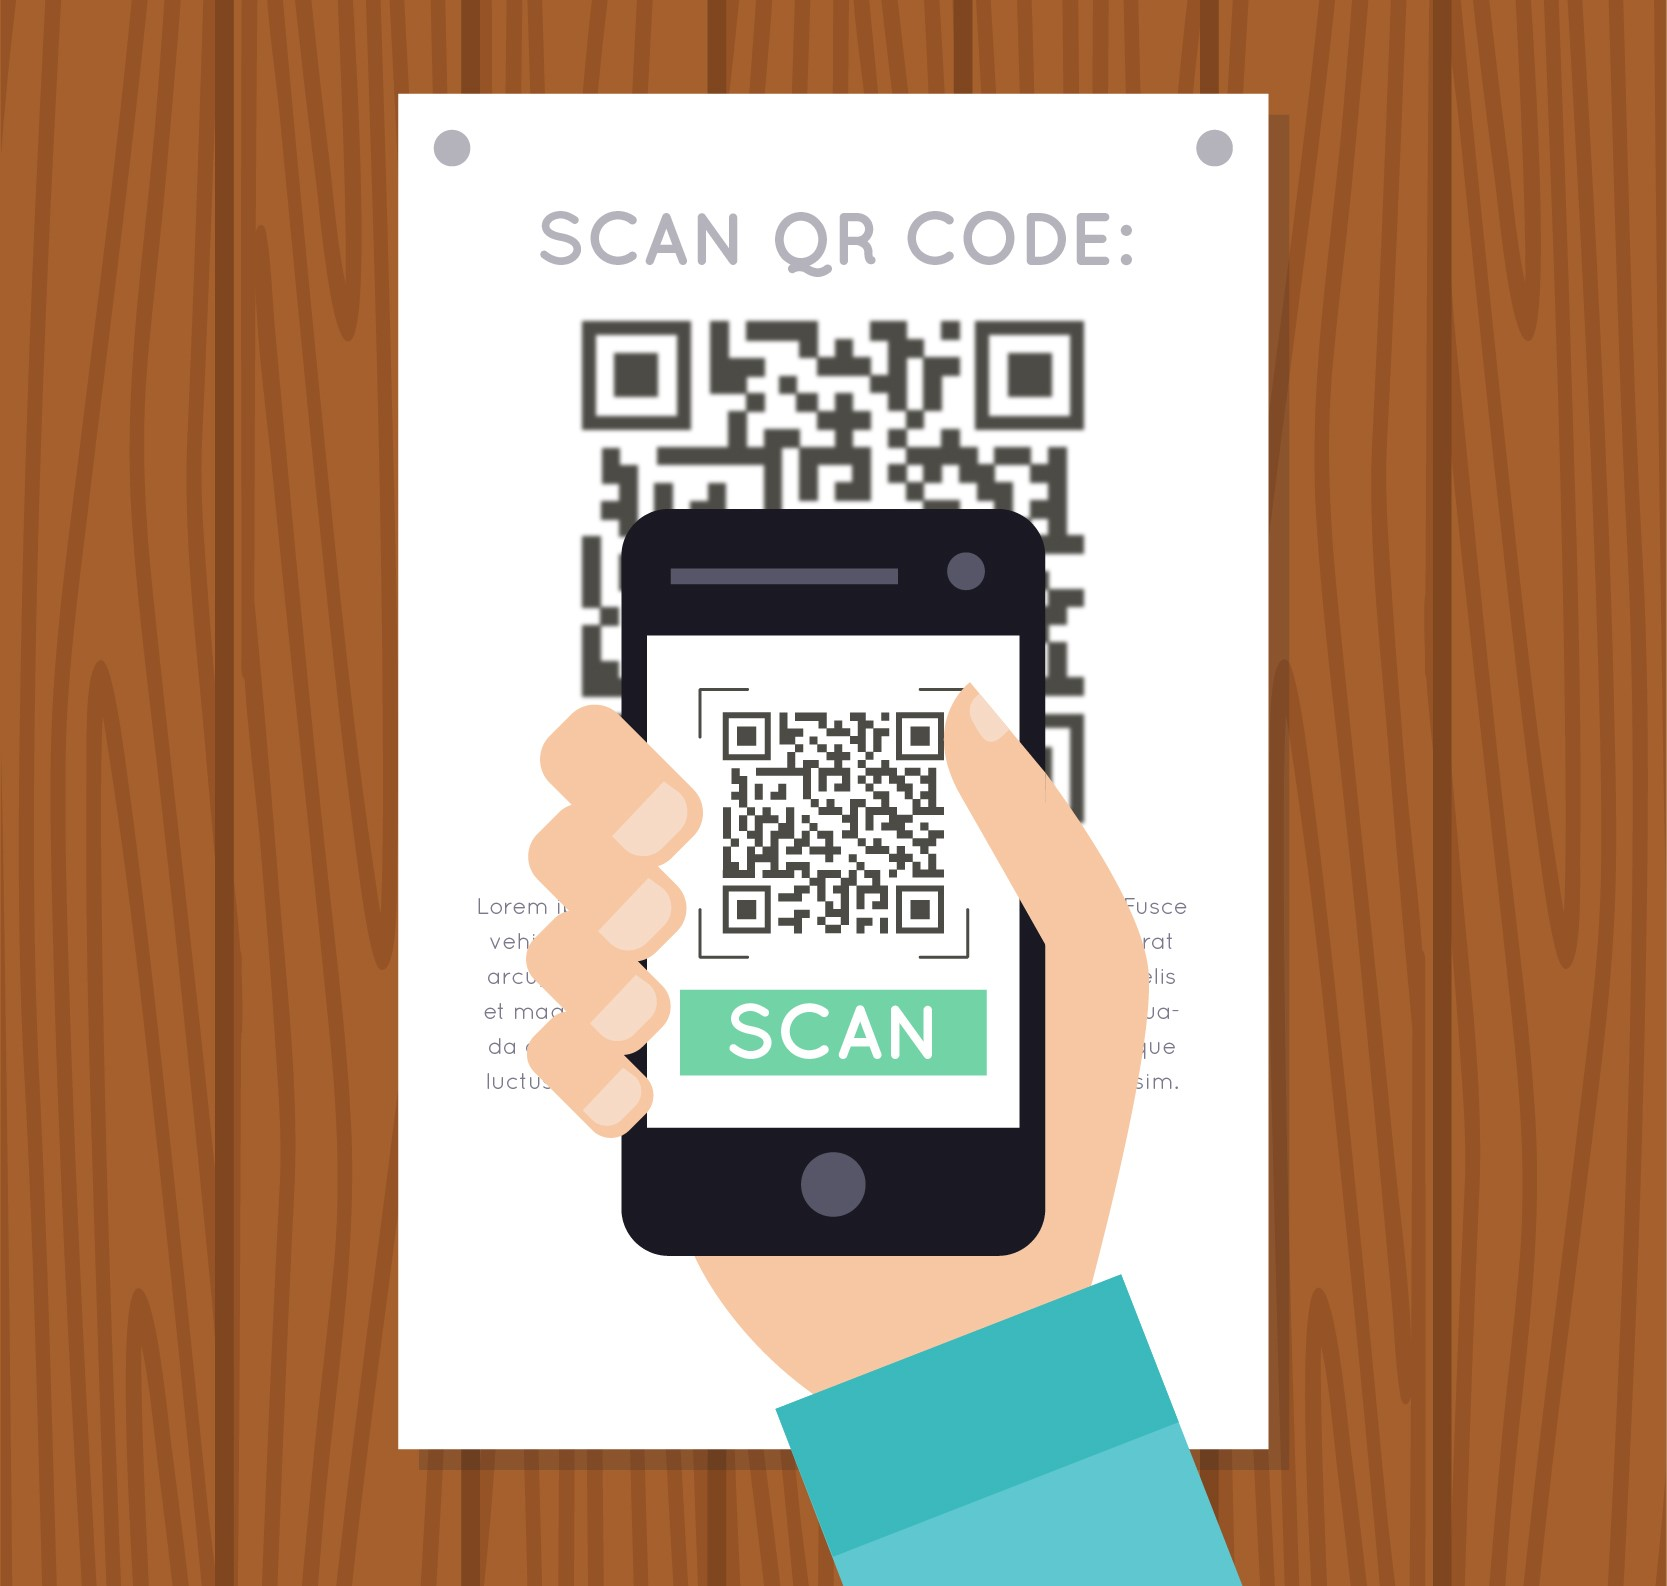 Will use of QR codes grow in the age of social distancing and eventually displace cards?